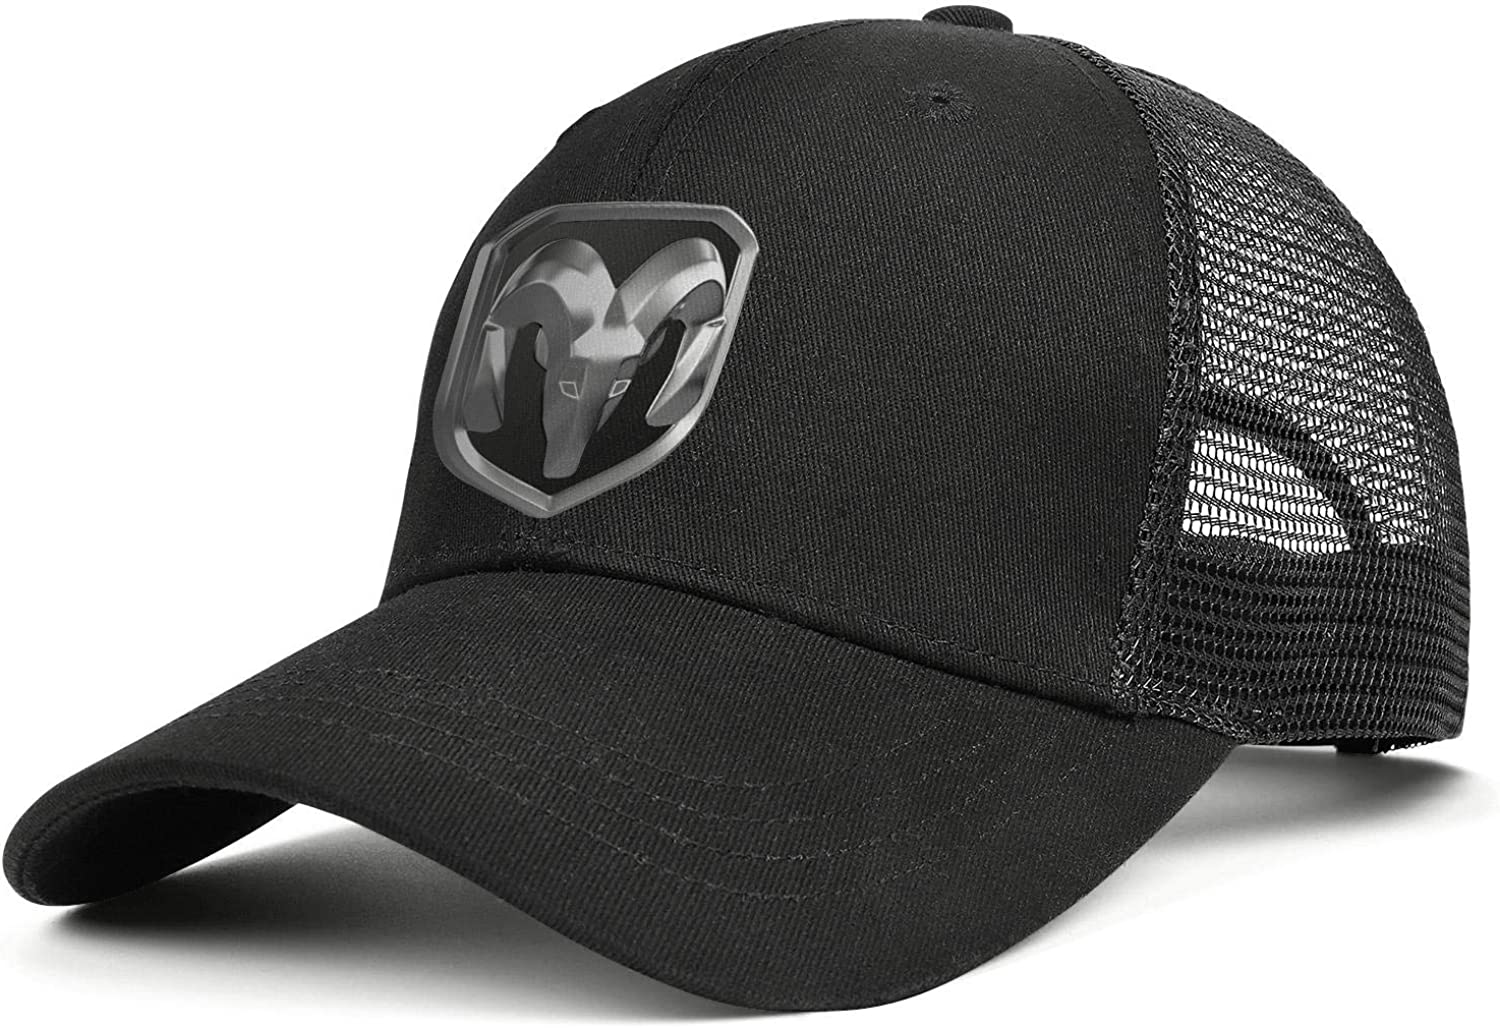 Ventilation Mesh Back Black Baseball Hats Dodge-RAM-car-Logo-Mens Women Relaxed Duck Tongue Hats